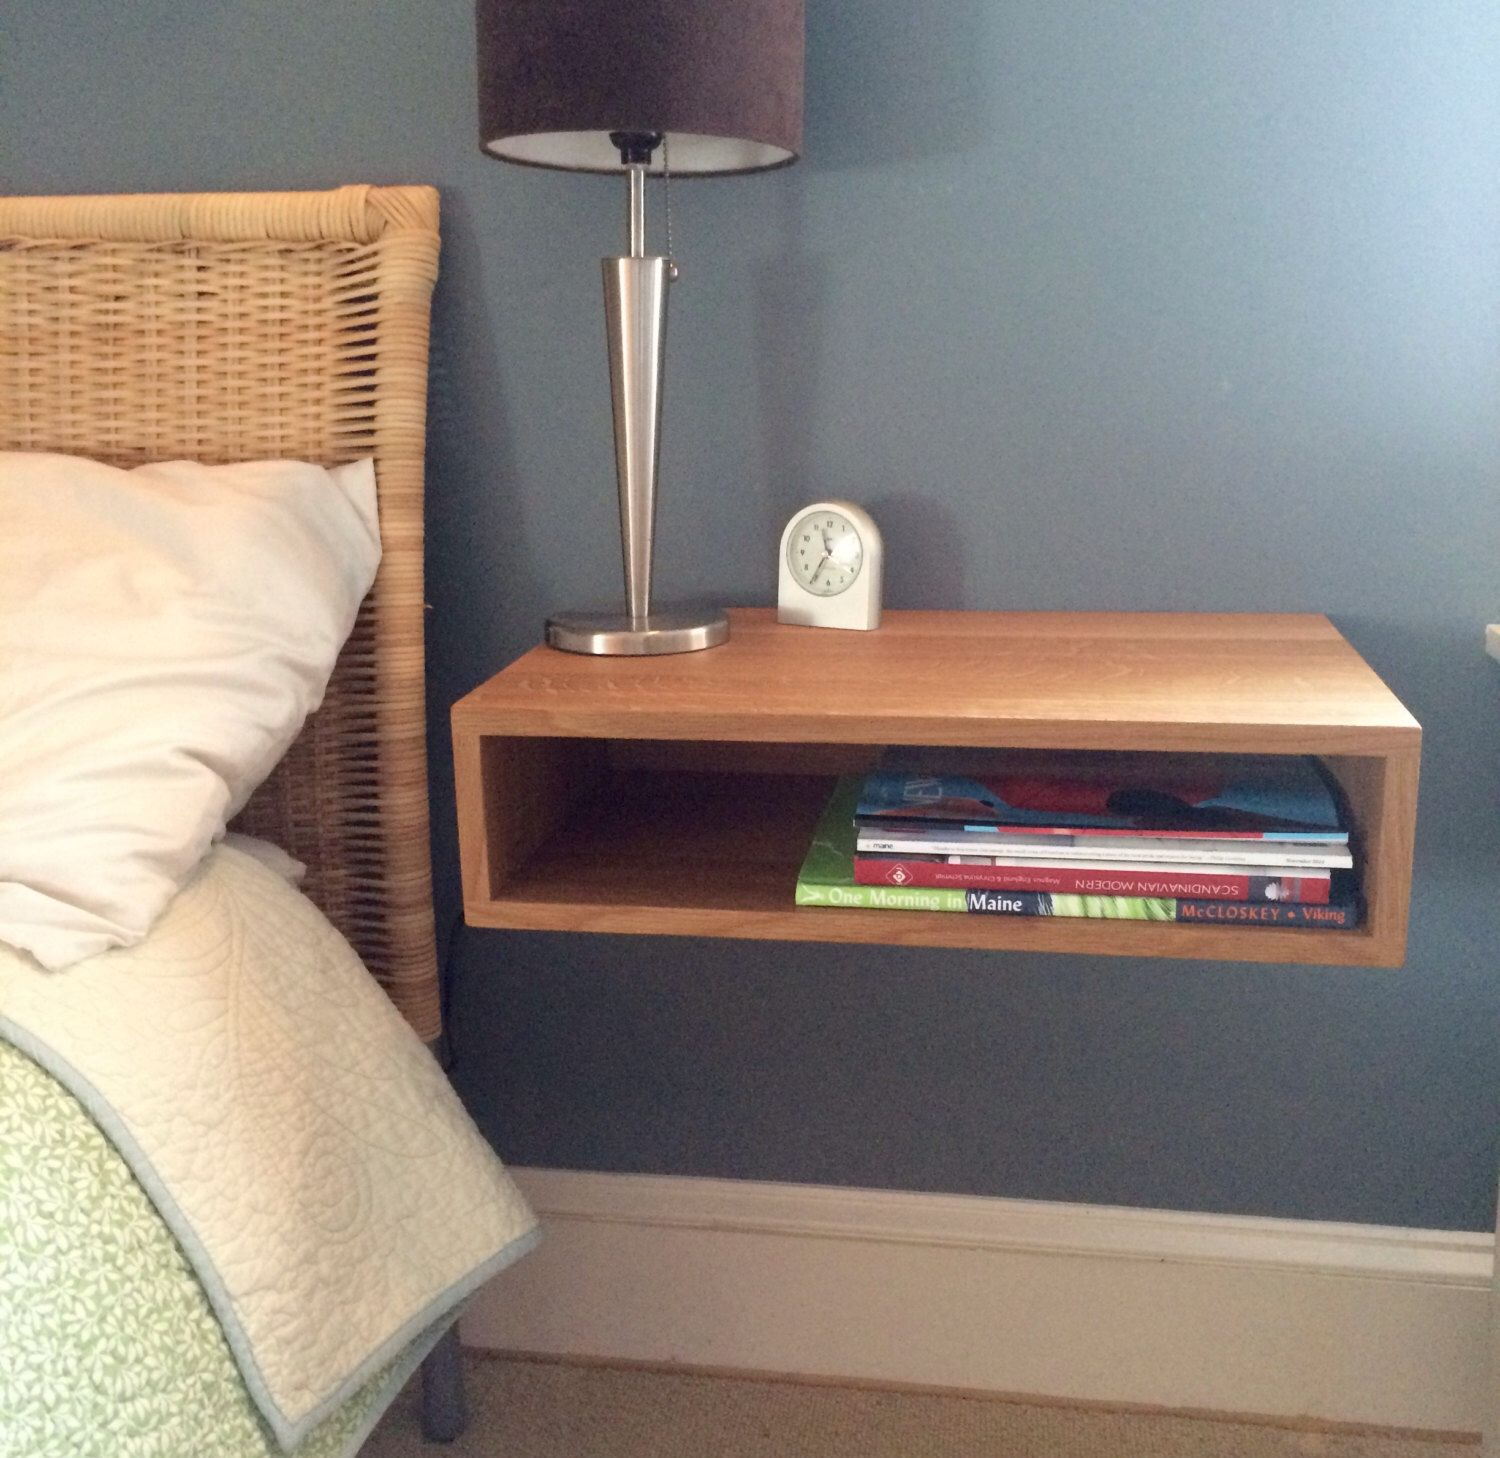 Wall Mounted Nightstand Diy: Floating Nightstand / Bedside Table In White Oak, Mid